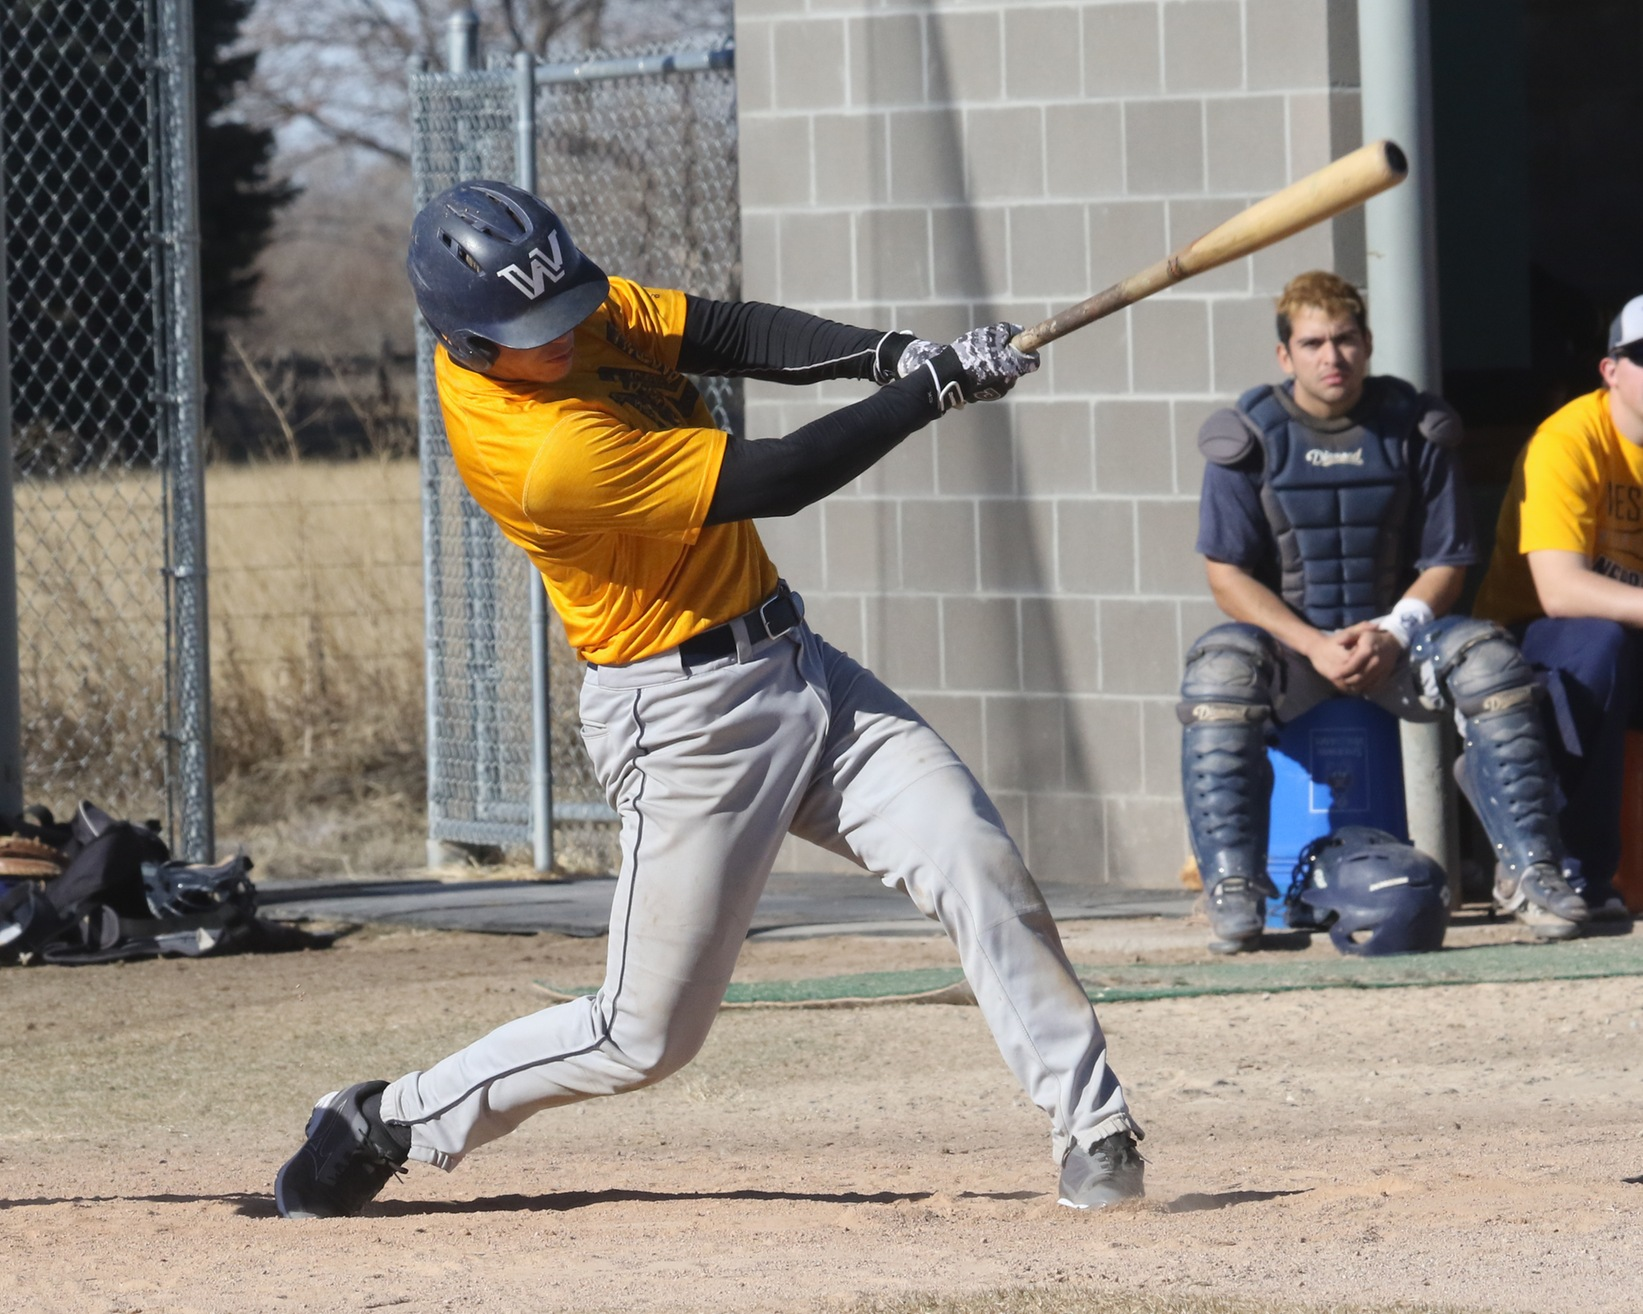 WNCC baseball takes two from Trinidad State